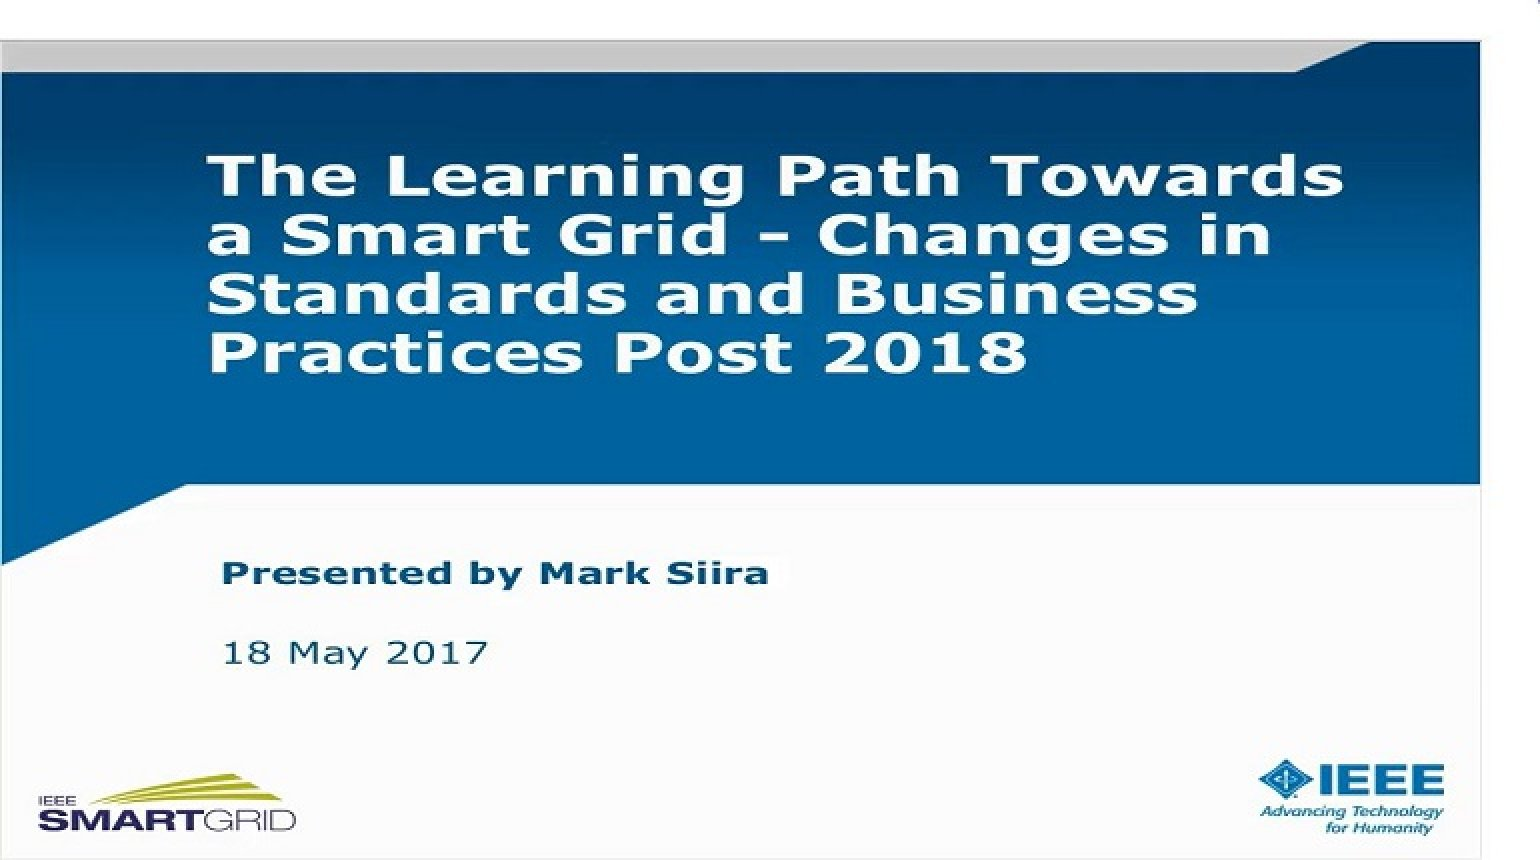 The Learning Path Towards a Smart Grid - Changes in Standard and Business Practices Post 2018 presented by Mark Siira